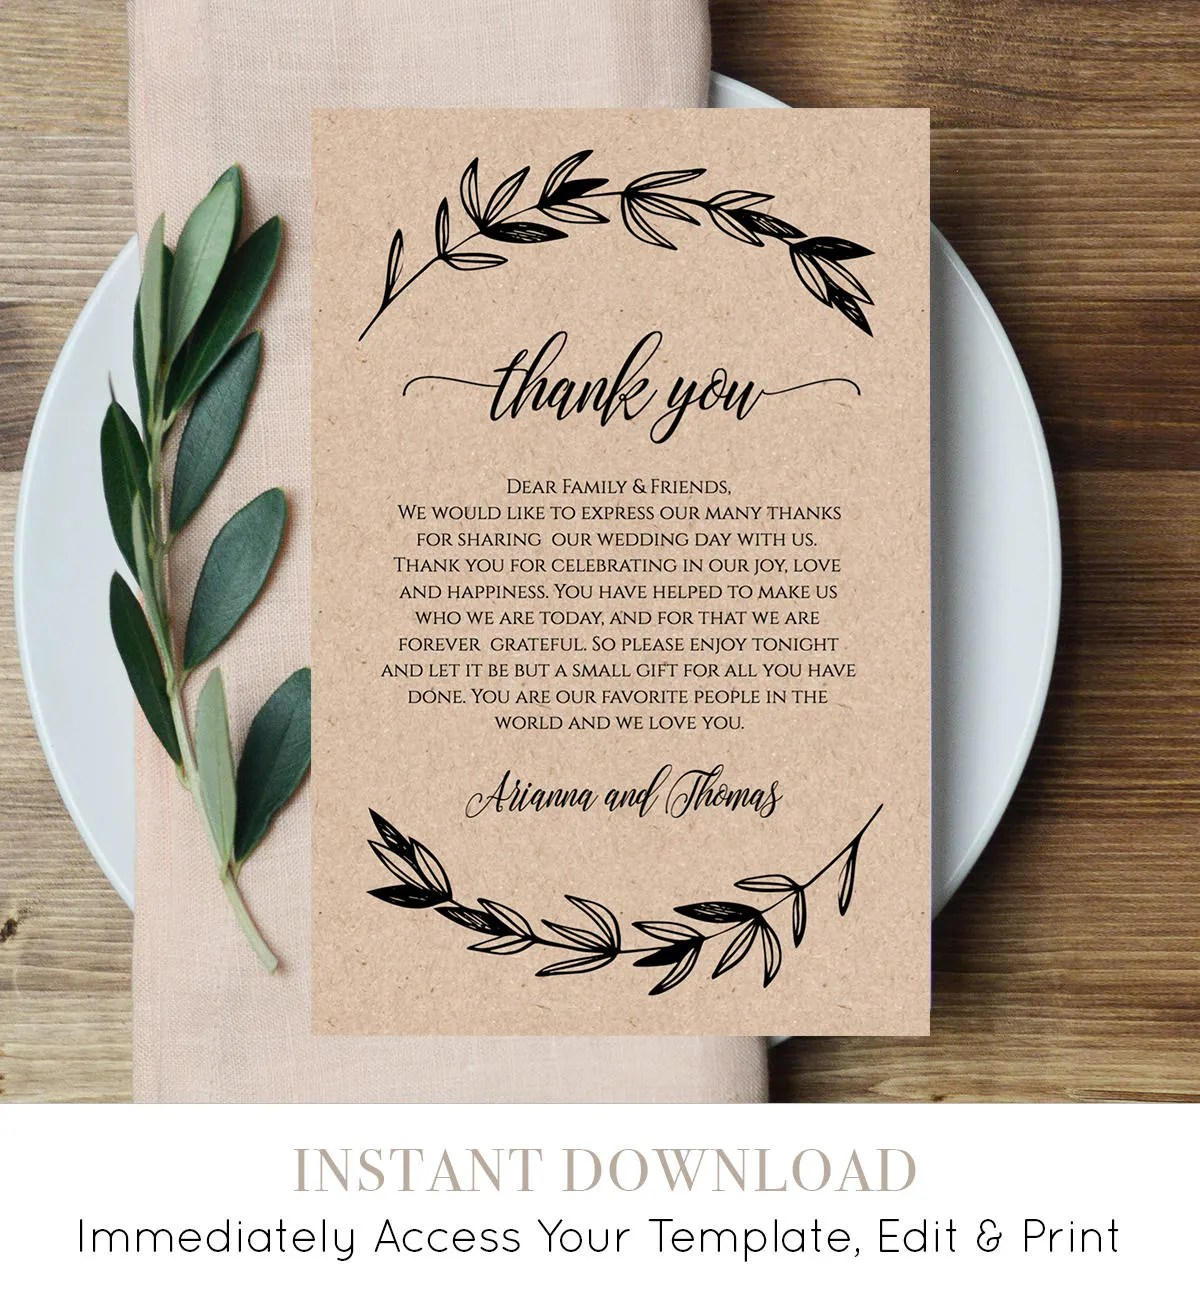 Wedding Invitation Thank You Letter Image collections - Letter ...